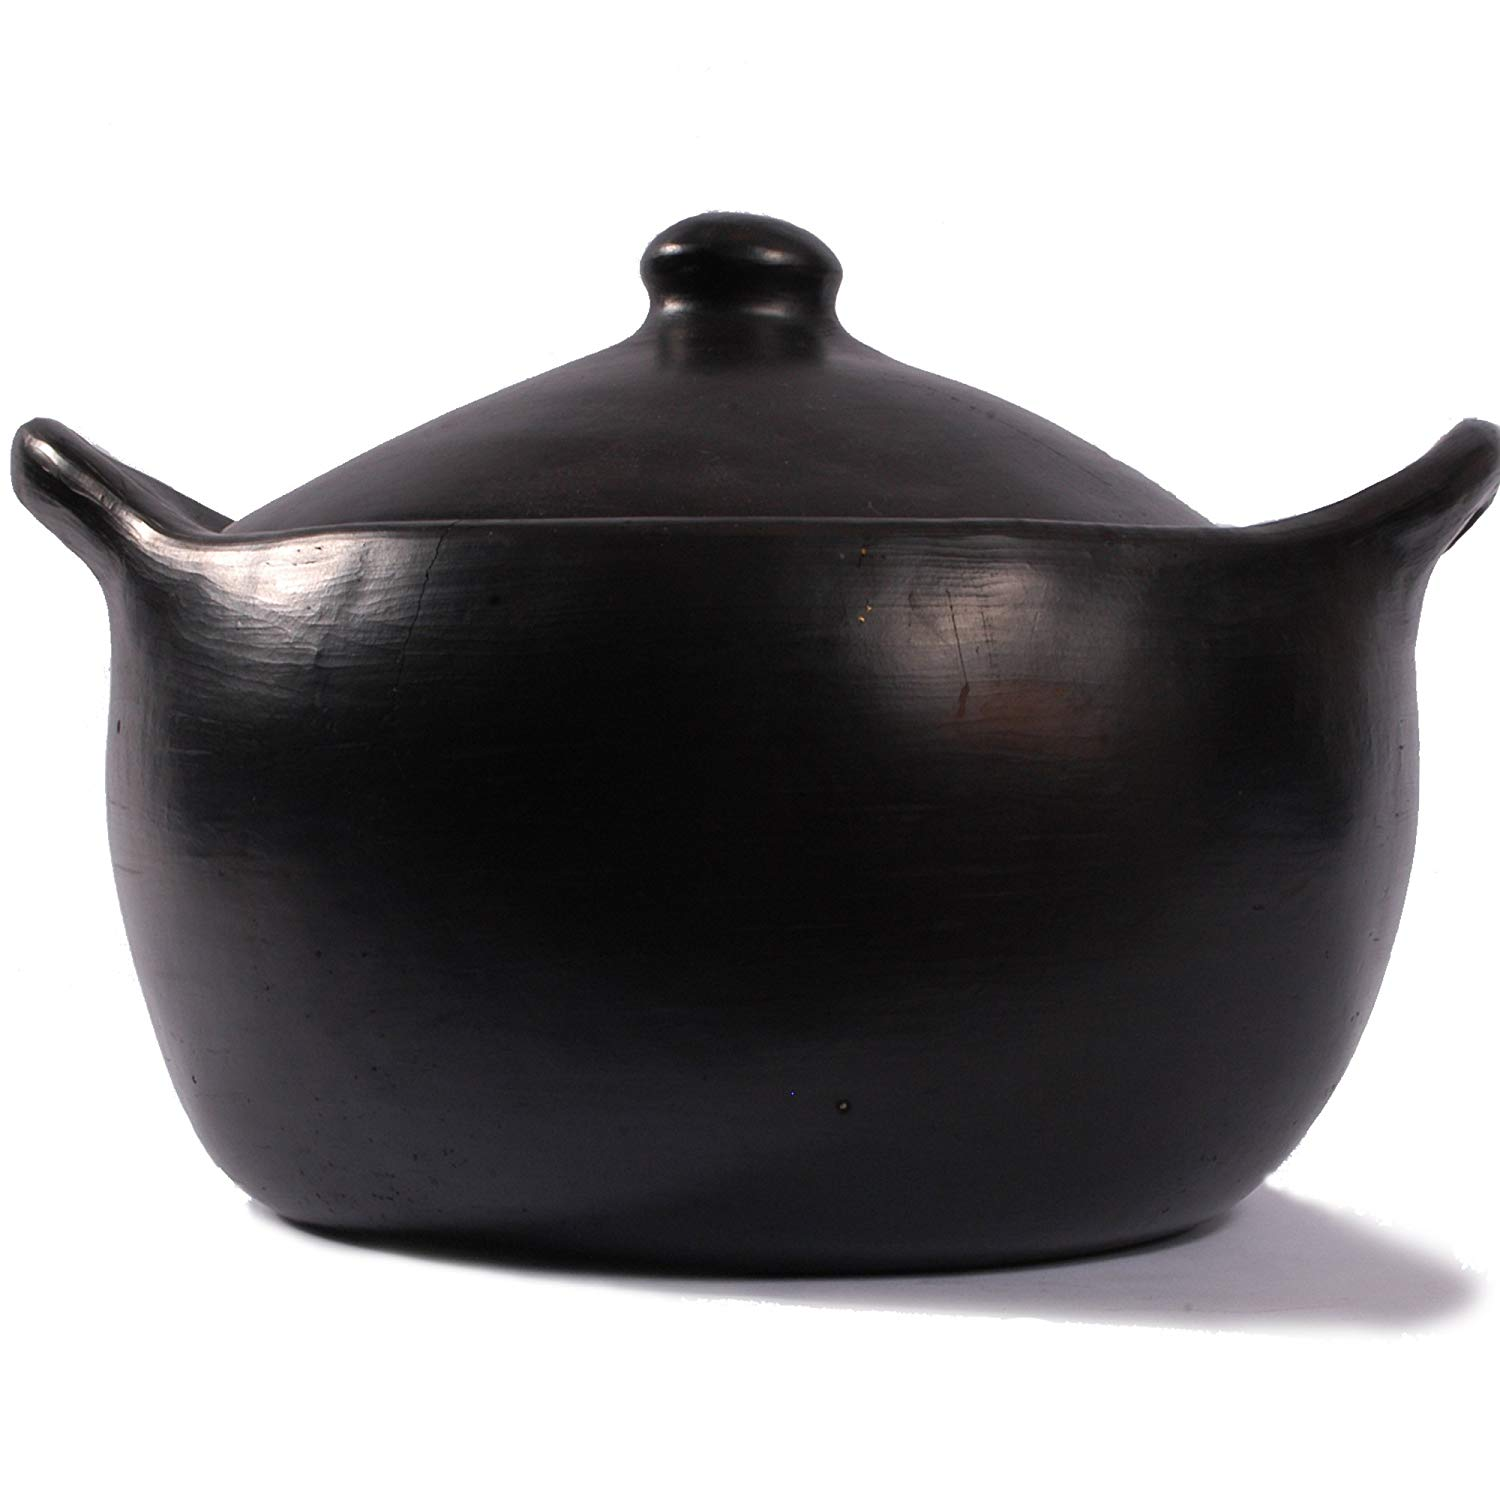 gifts for homesteaders earthenware stew pot.jpg